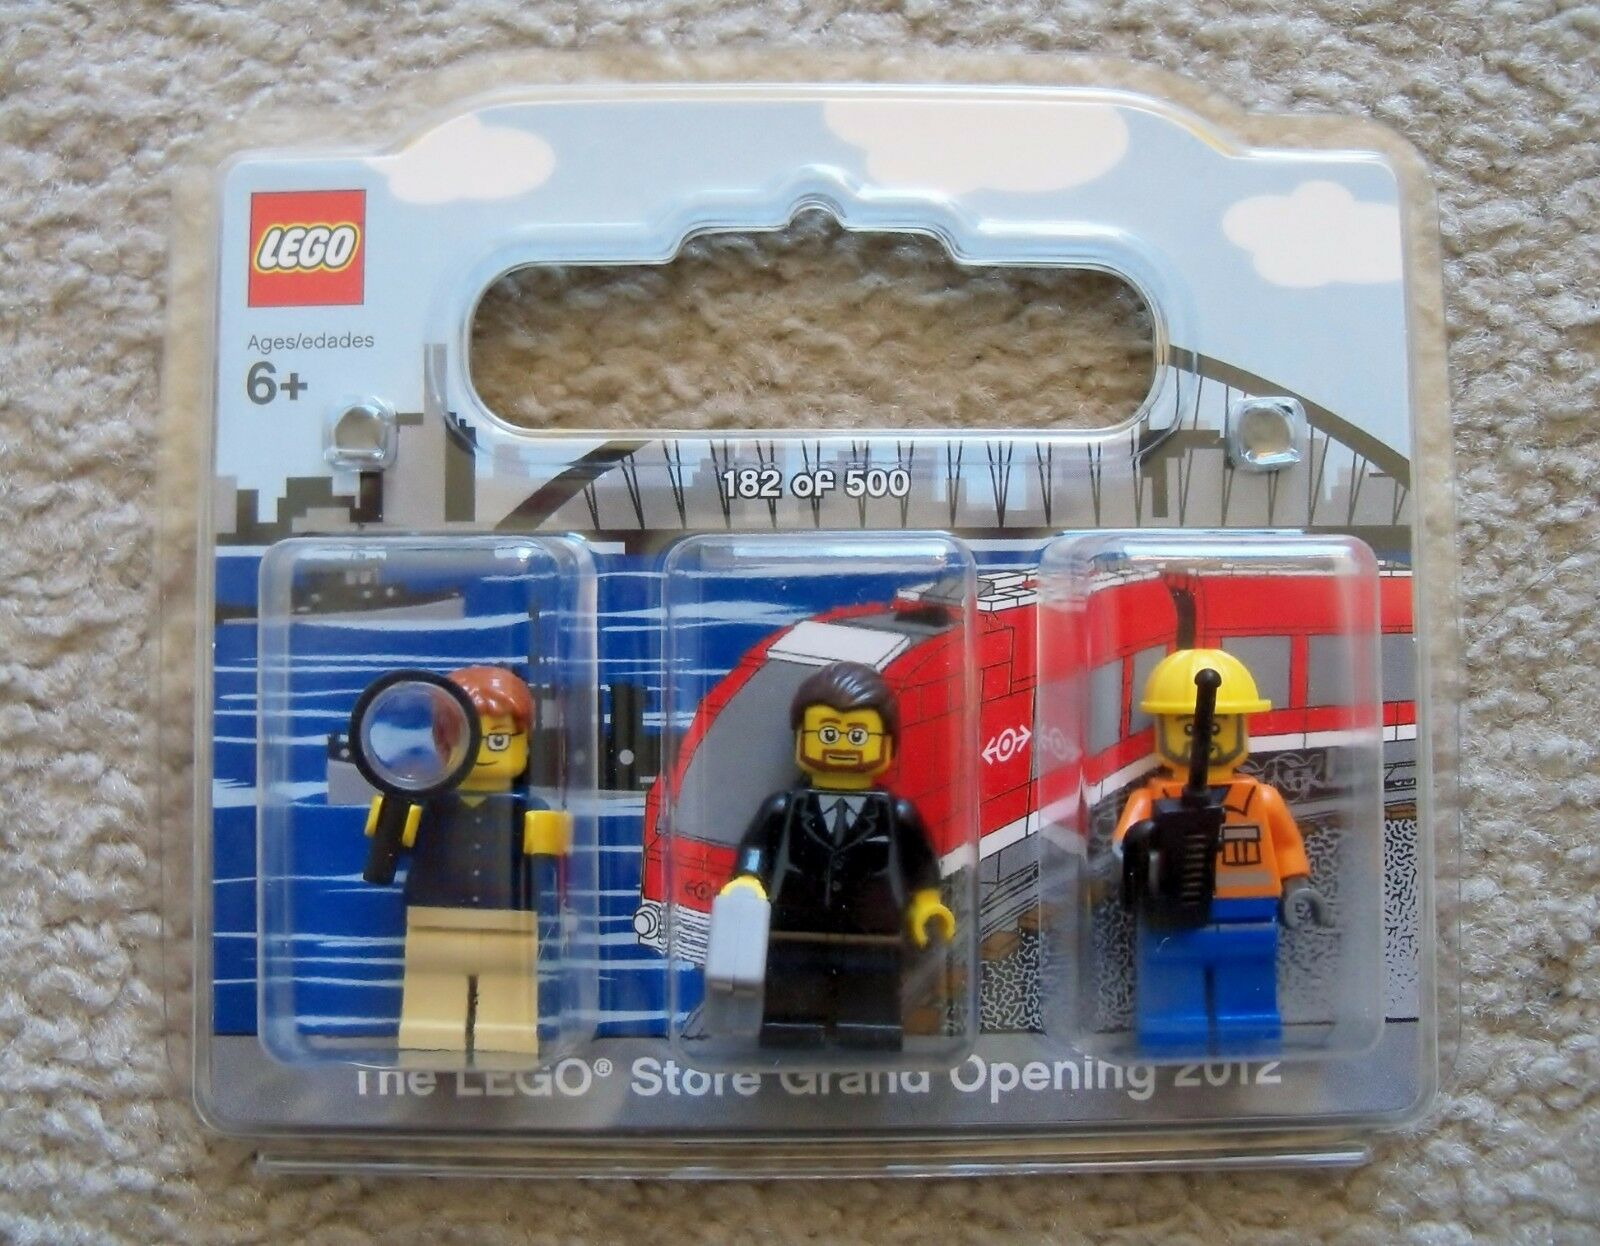 LEGO Store - Rare - Grand Opening Exclusive - Elizabeth NJ 2012 182/500 - New